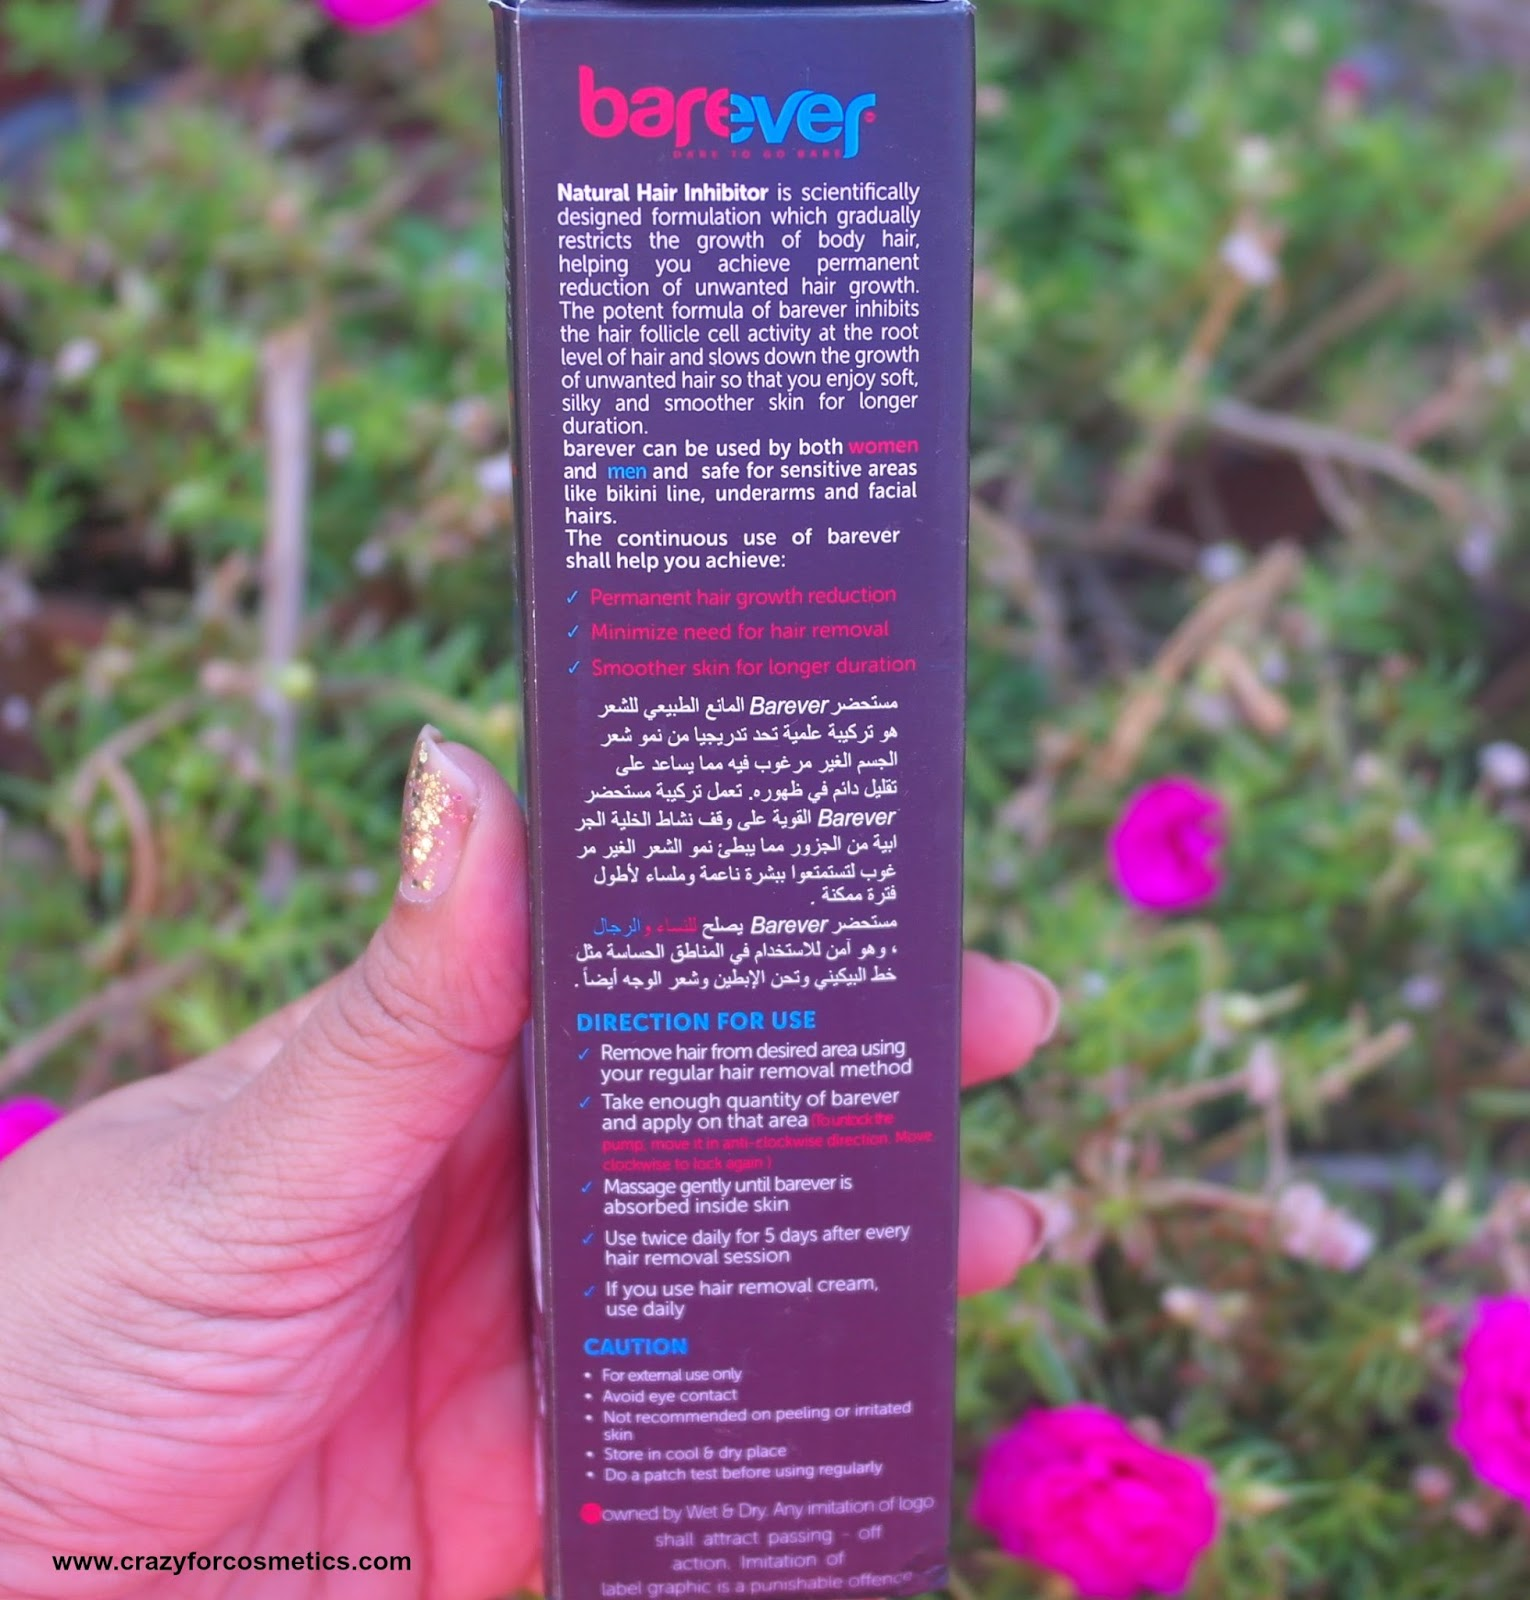 Barever Natural Hair Inhibitor Side Effects